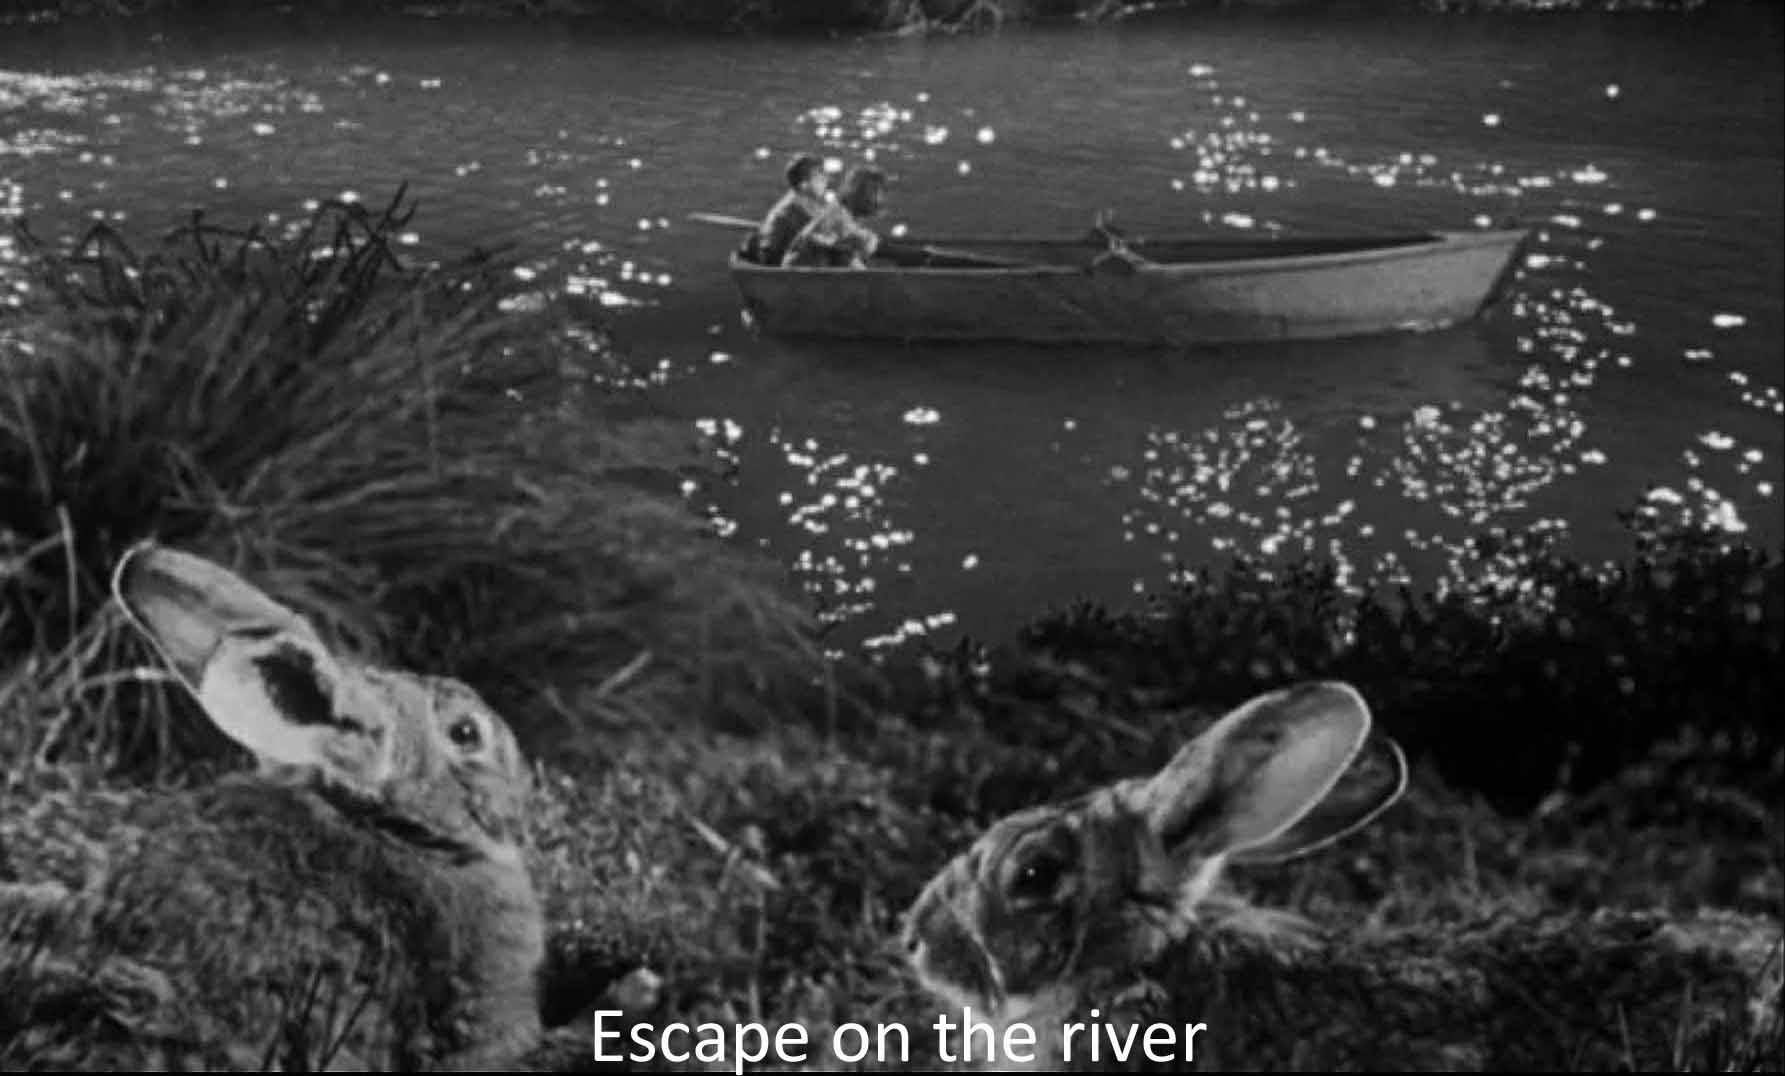 Escape on the river